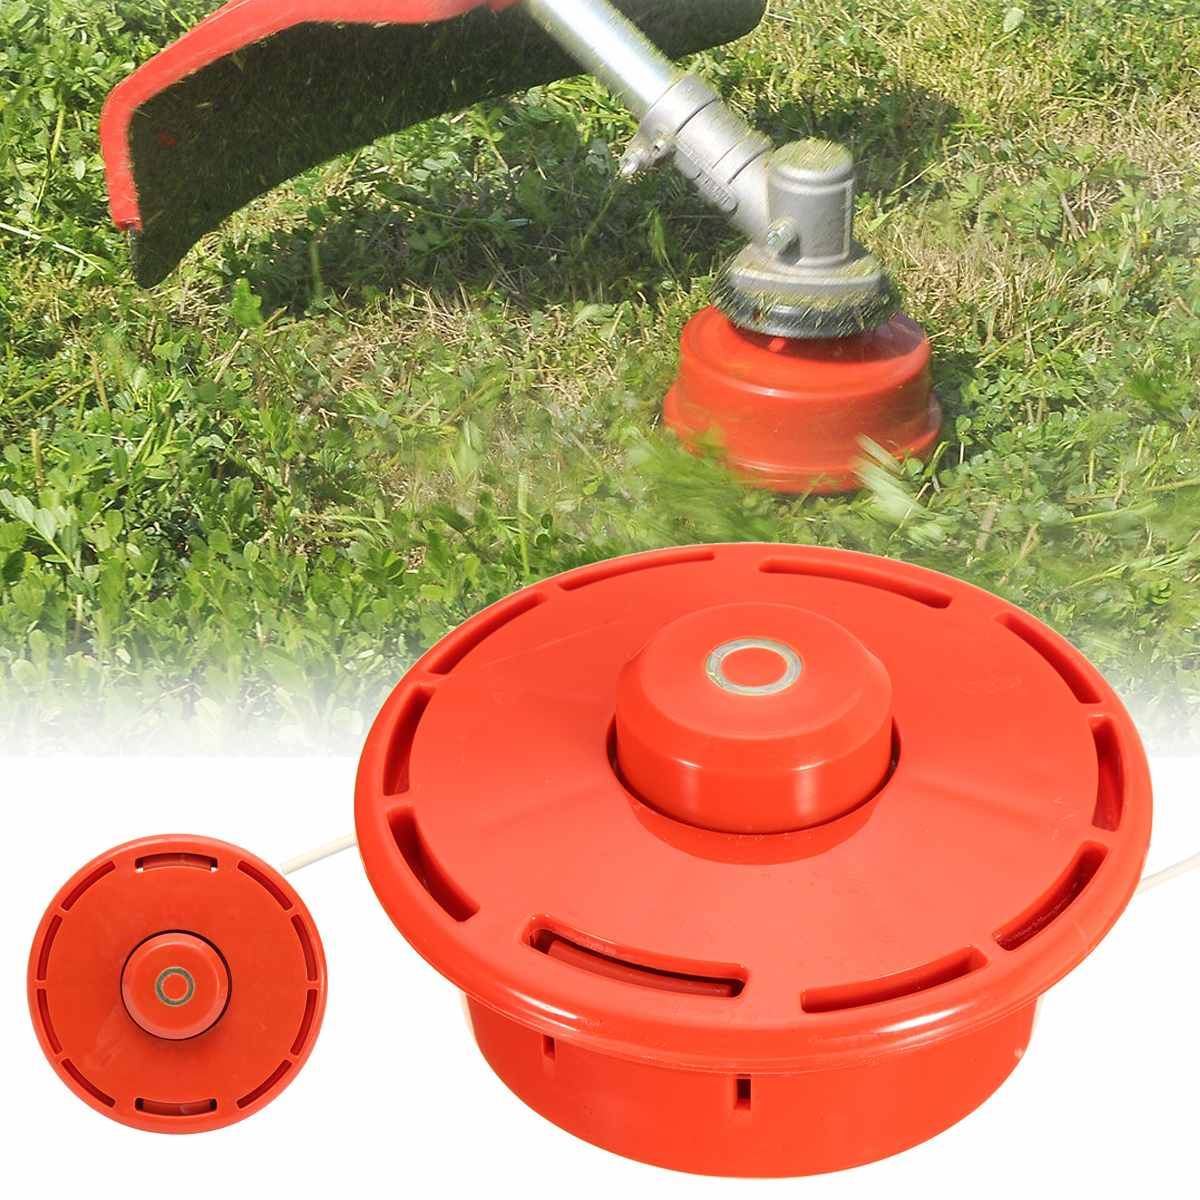 Universal Strimmer Bump Feed Line Spool Brush Cutter Grass Replacement Trimmer Head Hardened Plastic Grass Trimmer Head plastic